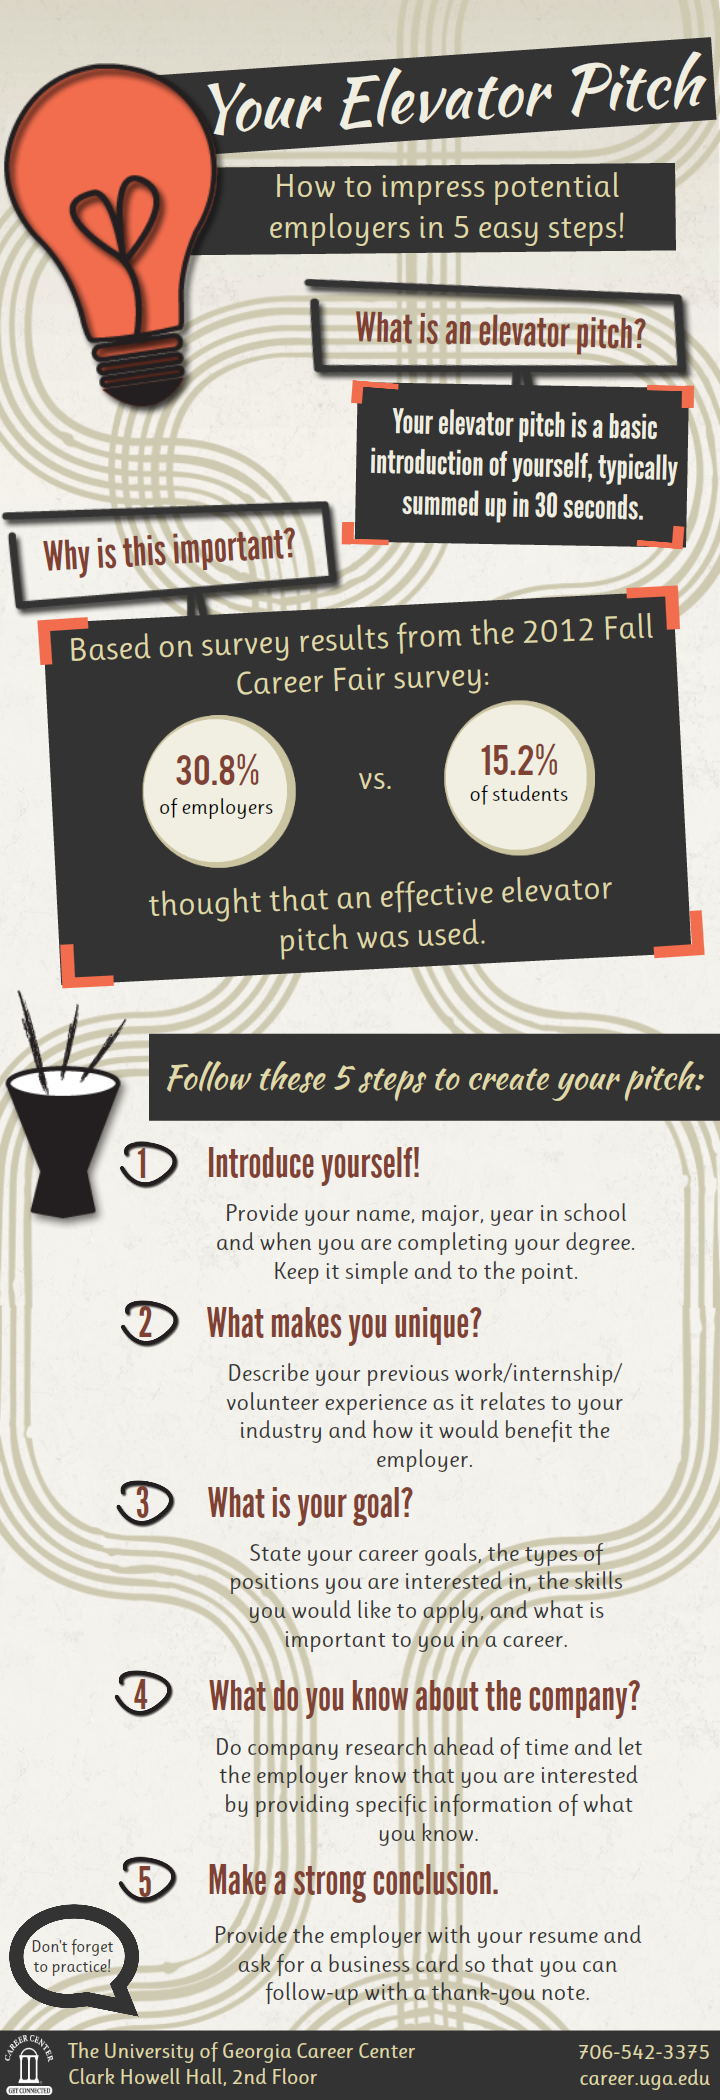 Impress-Employers-in-30-Seconds-by-Your-Elevator-Pitch-INFOGRAPHIC